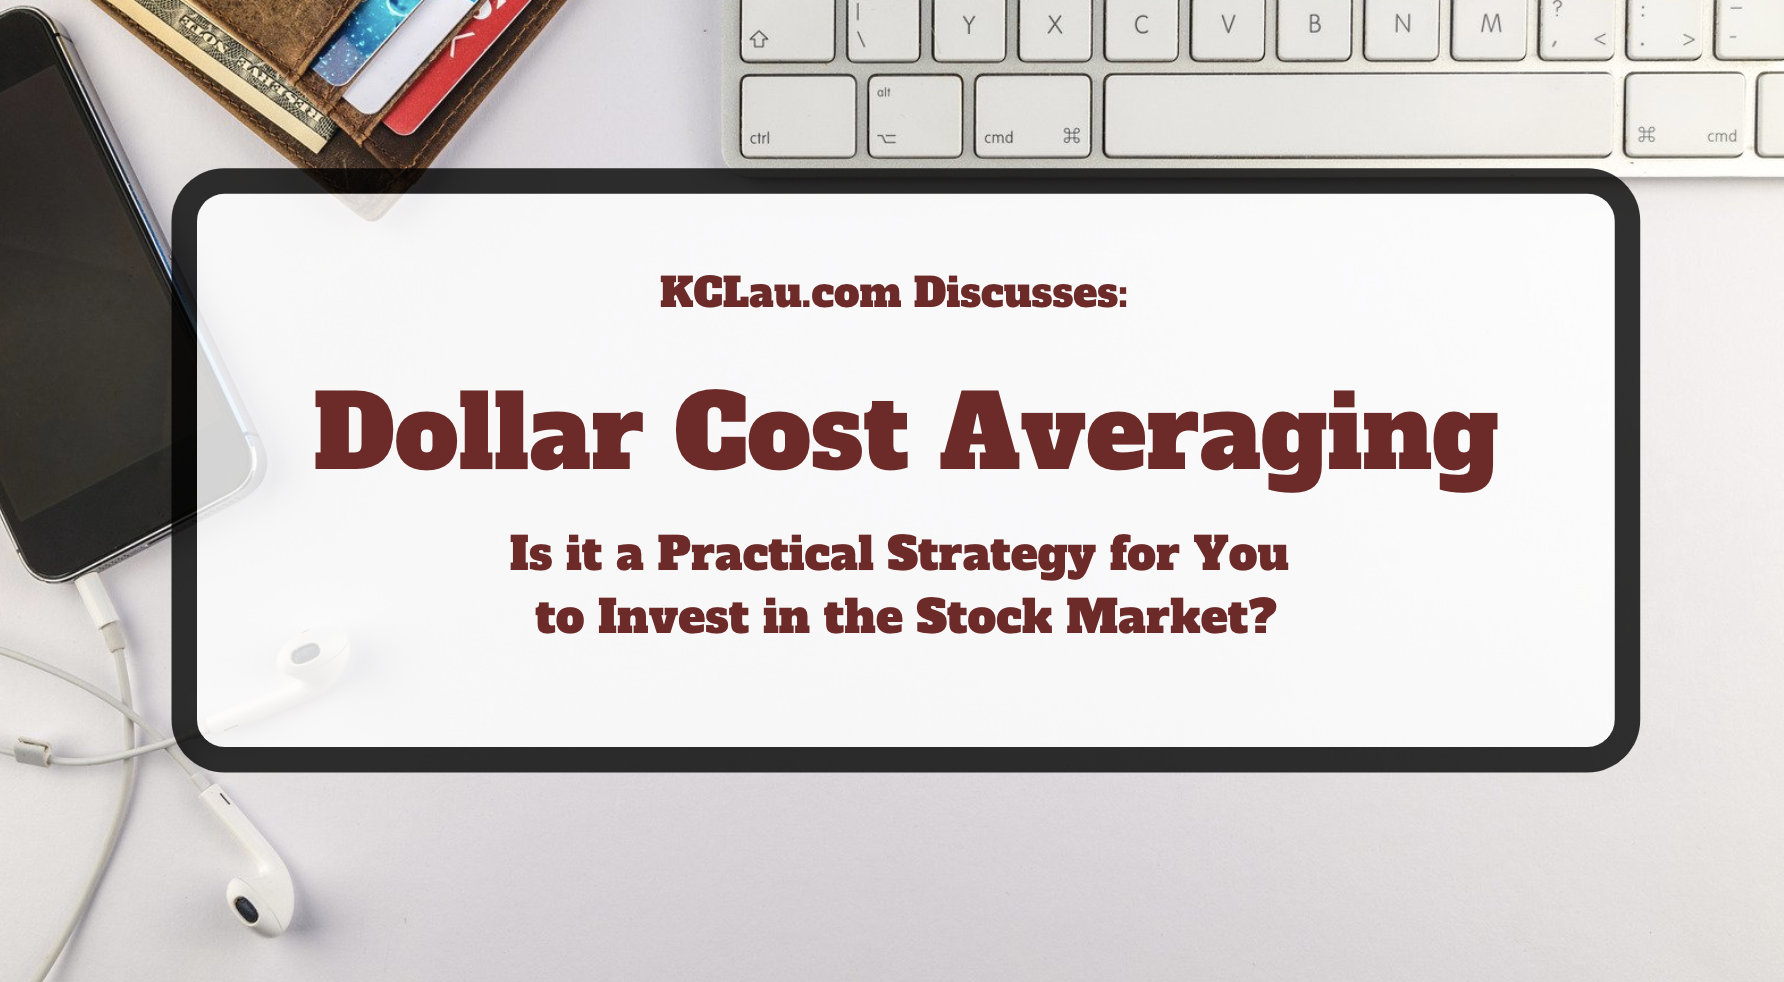 Dollar Cost Averaging: Is It a Practical Strategy to Invest in the Stock Market?